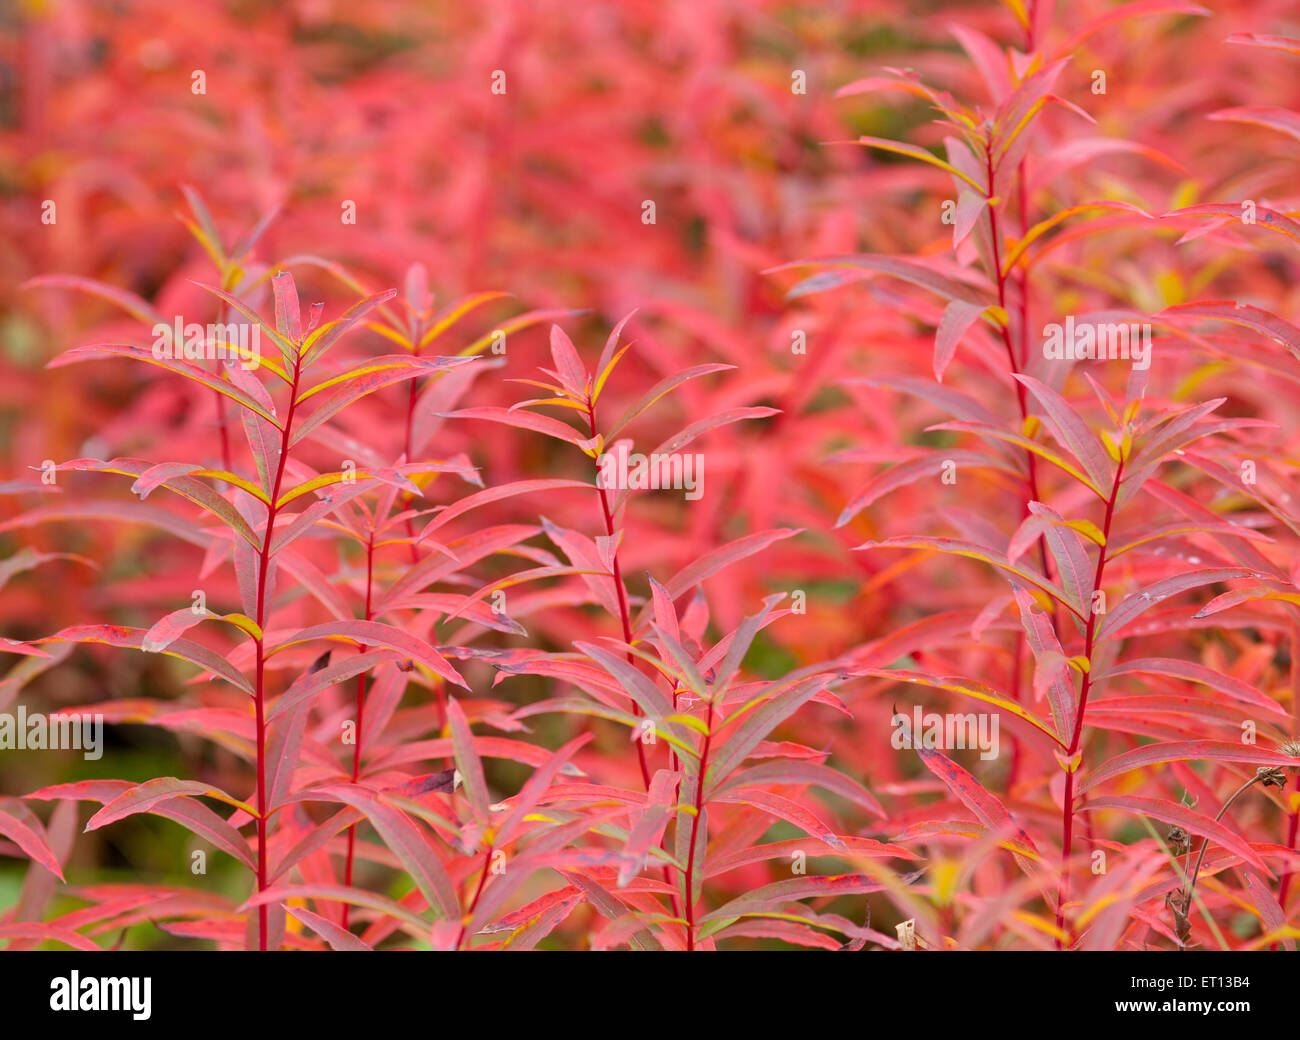 Close up on Fire-weed, Chamerion angustifolium in the autumn, fall. Orange to red colors. Stock Photo